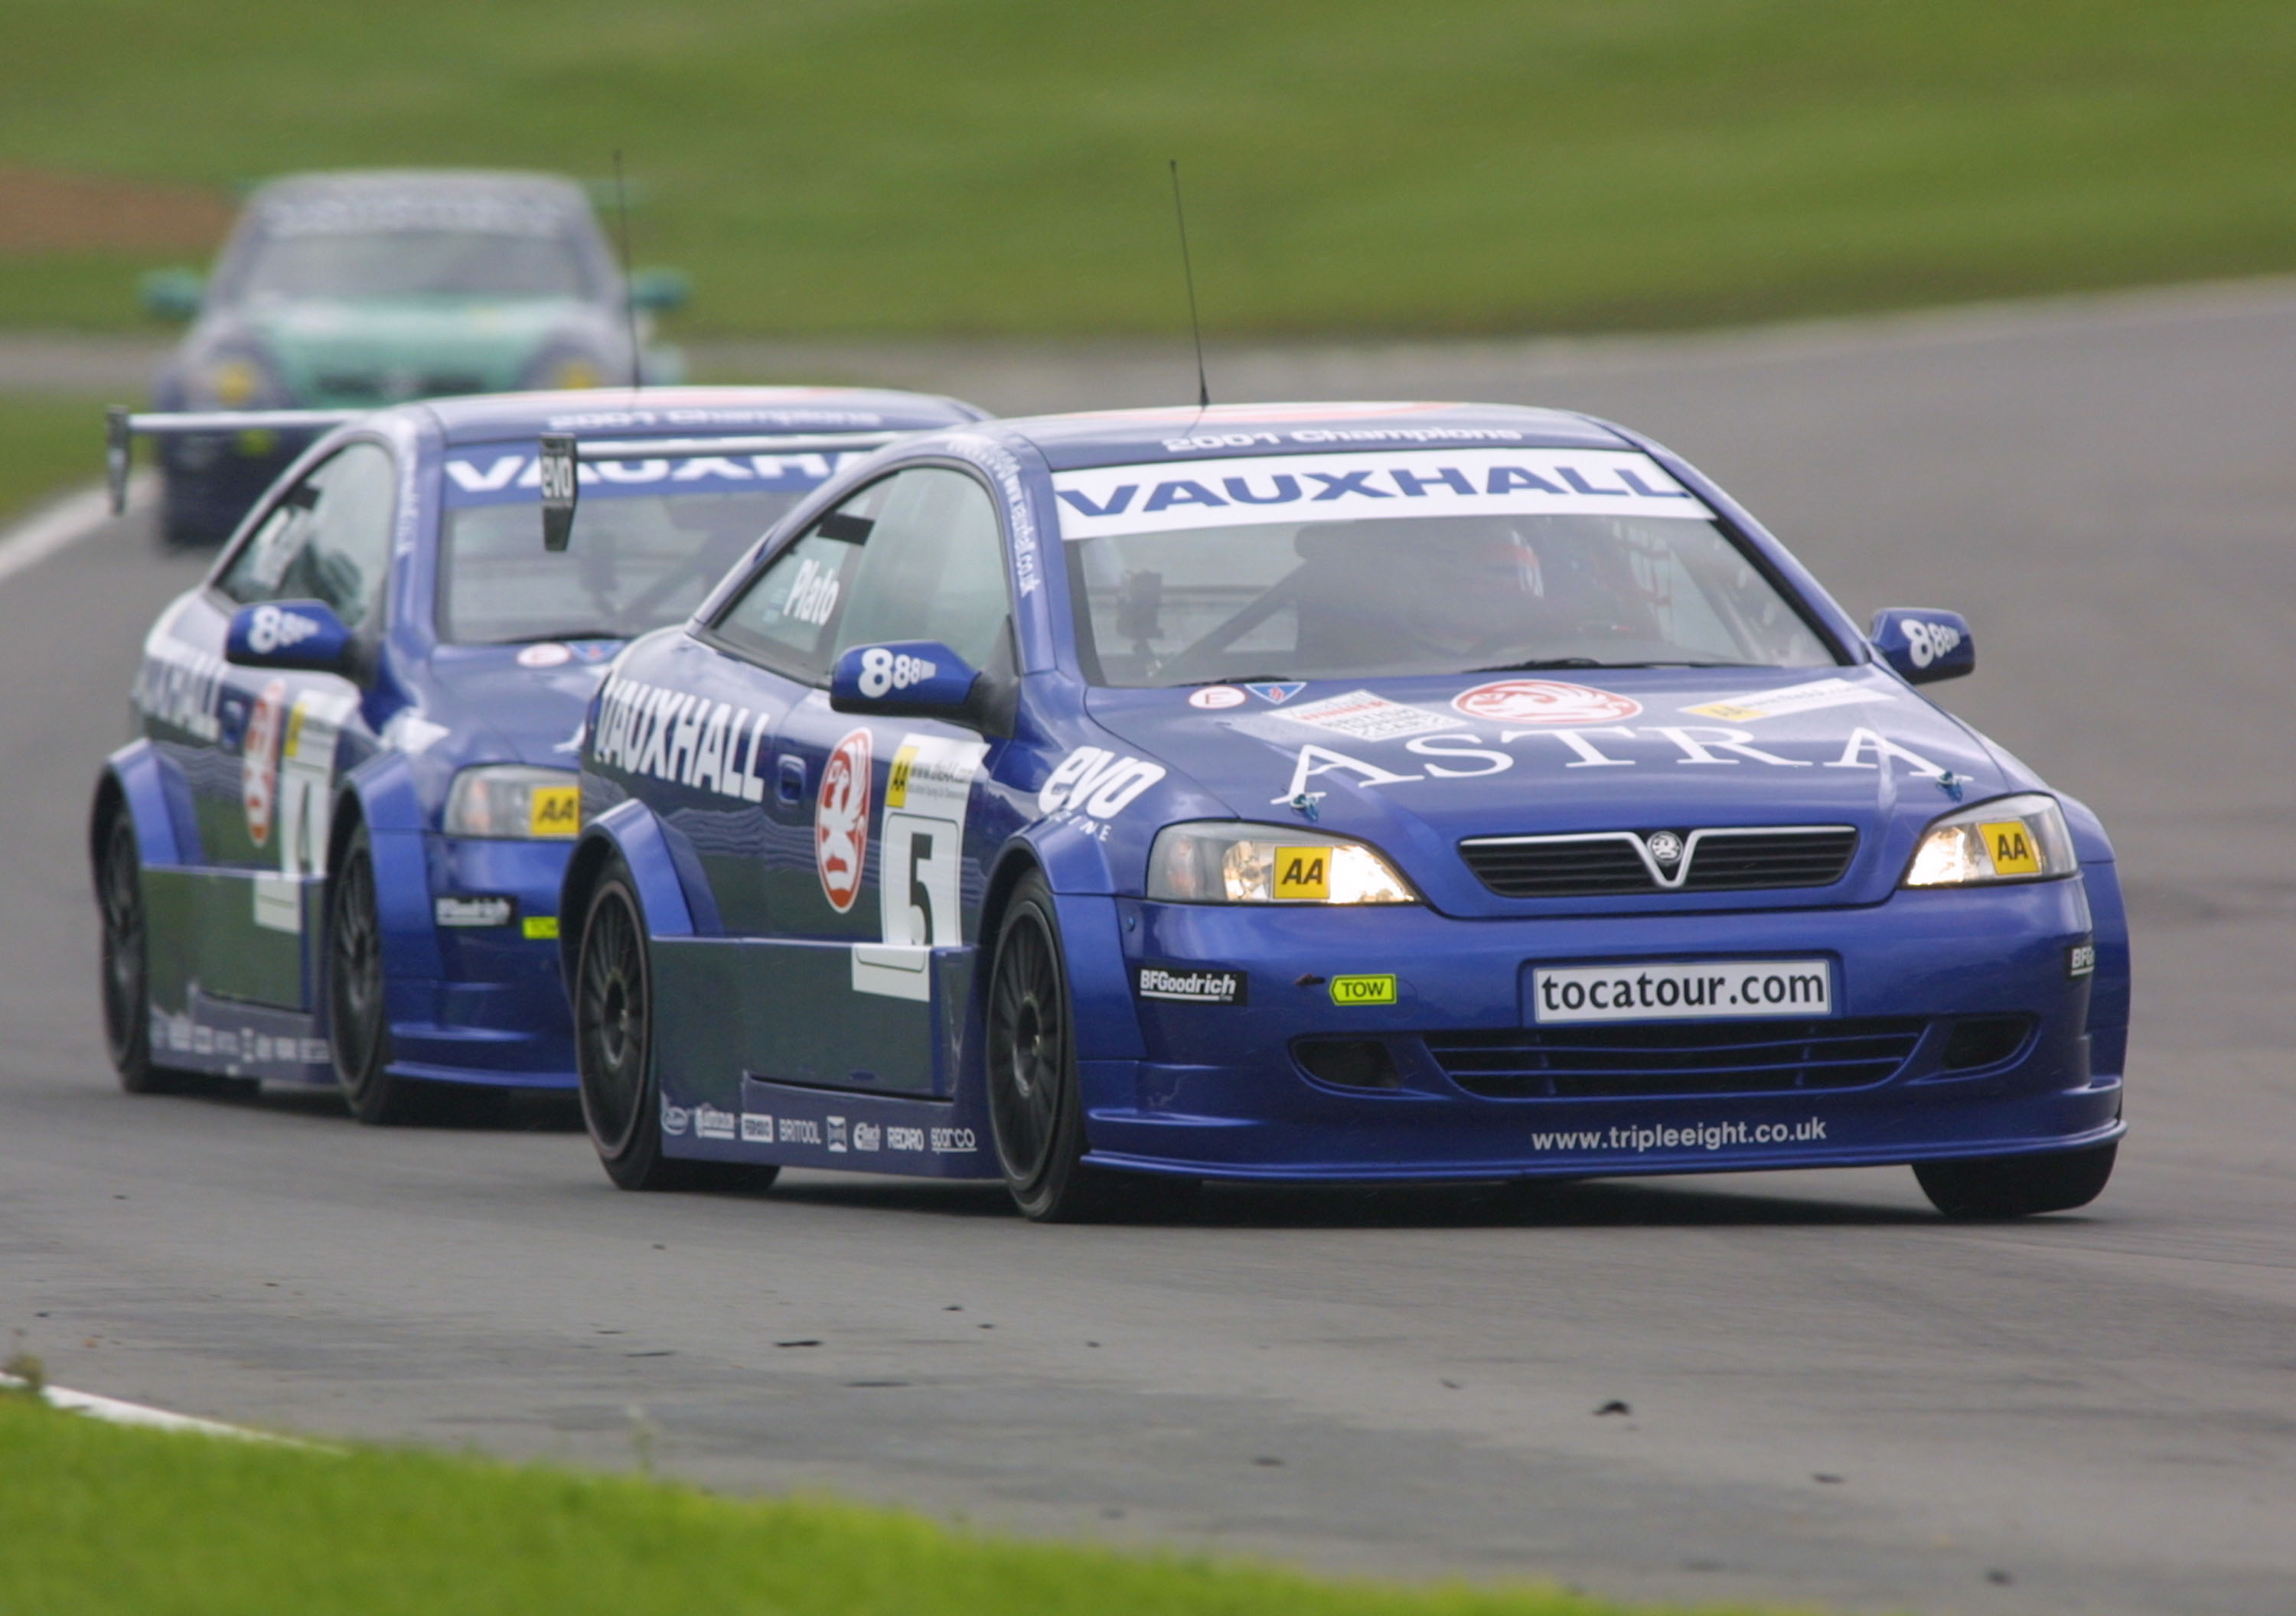 Will BMR face a fierce rivalry like that of Plato and Muller in 2001? Image Credit: BTCC.net